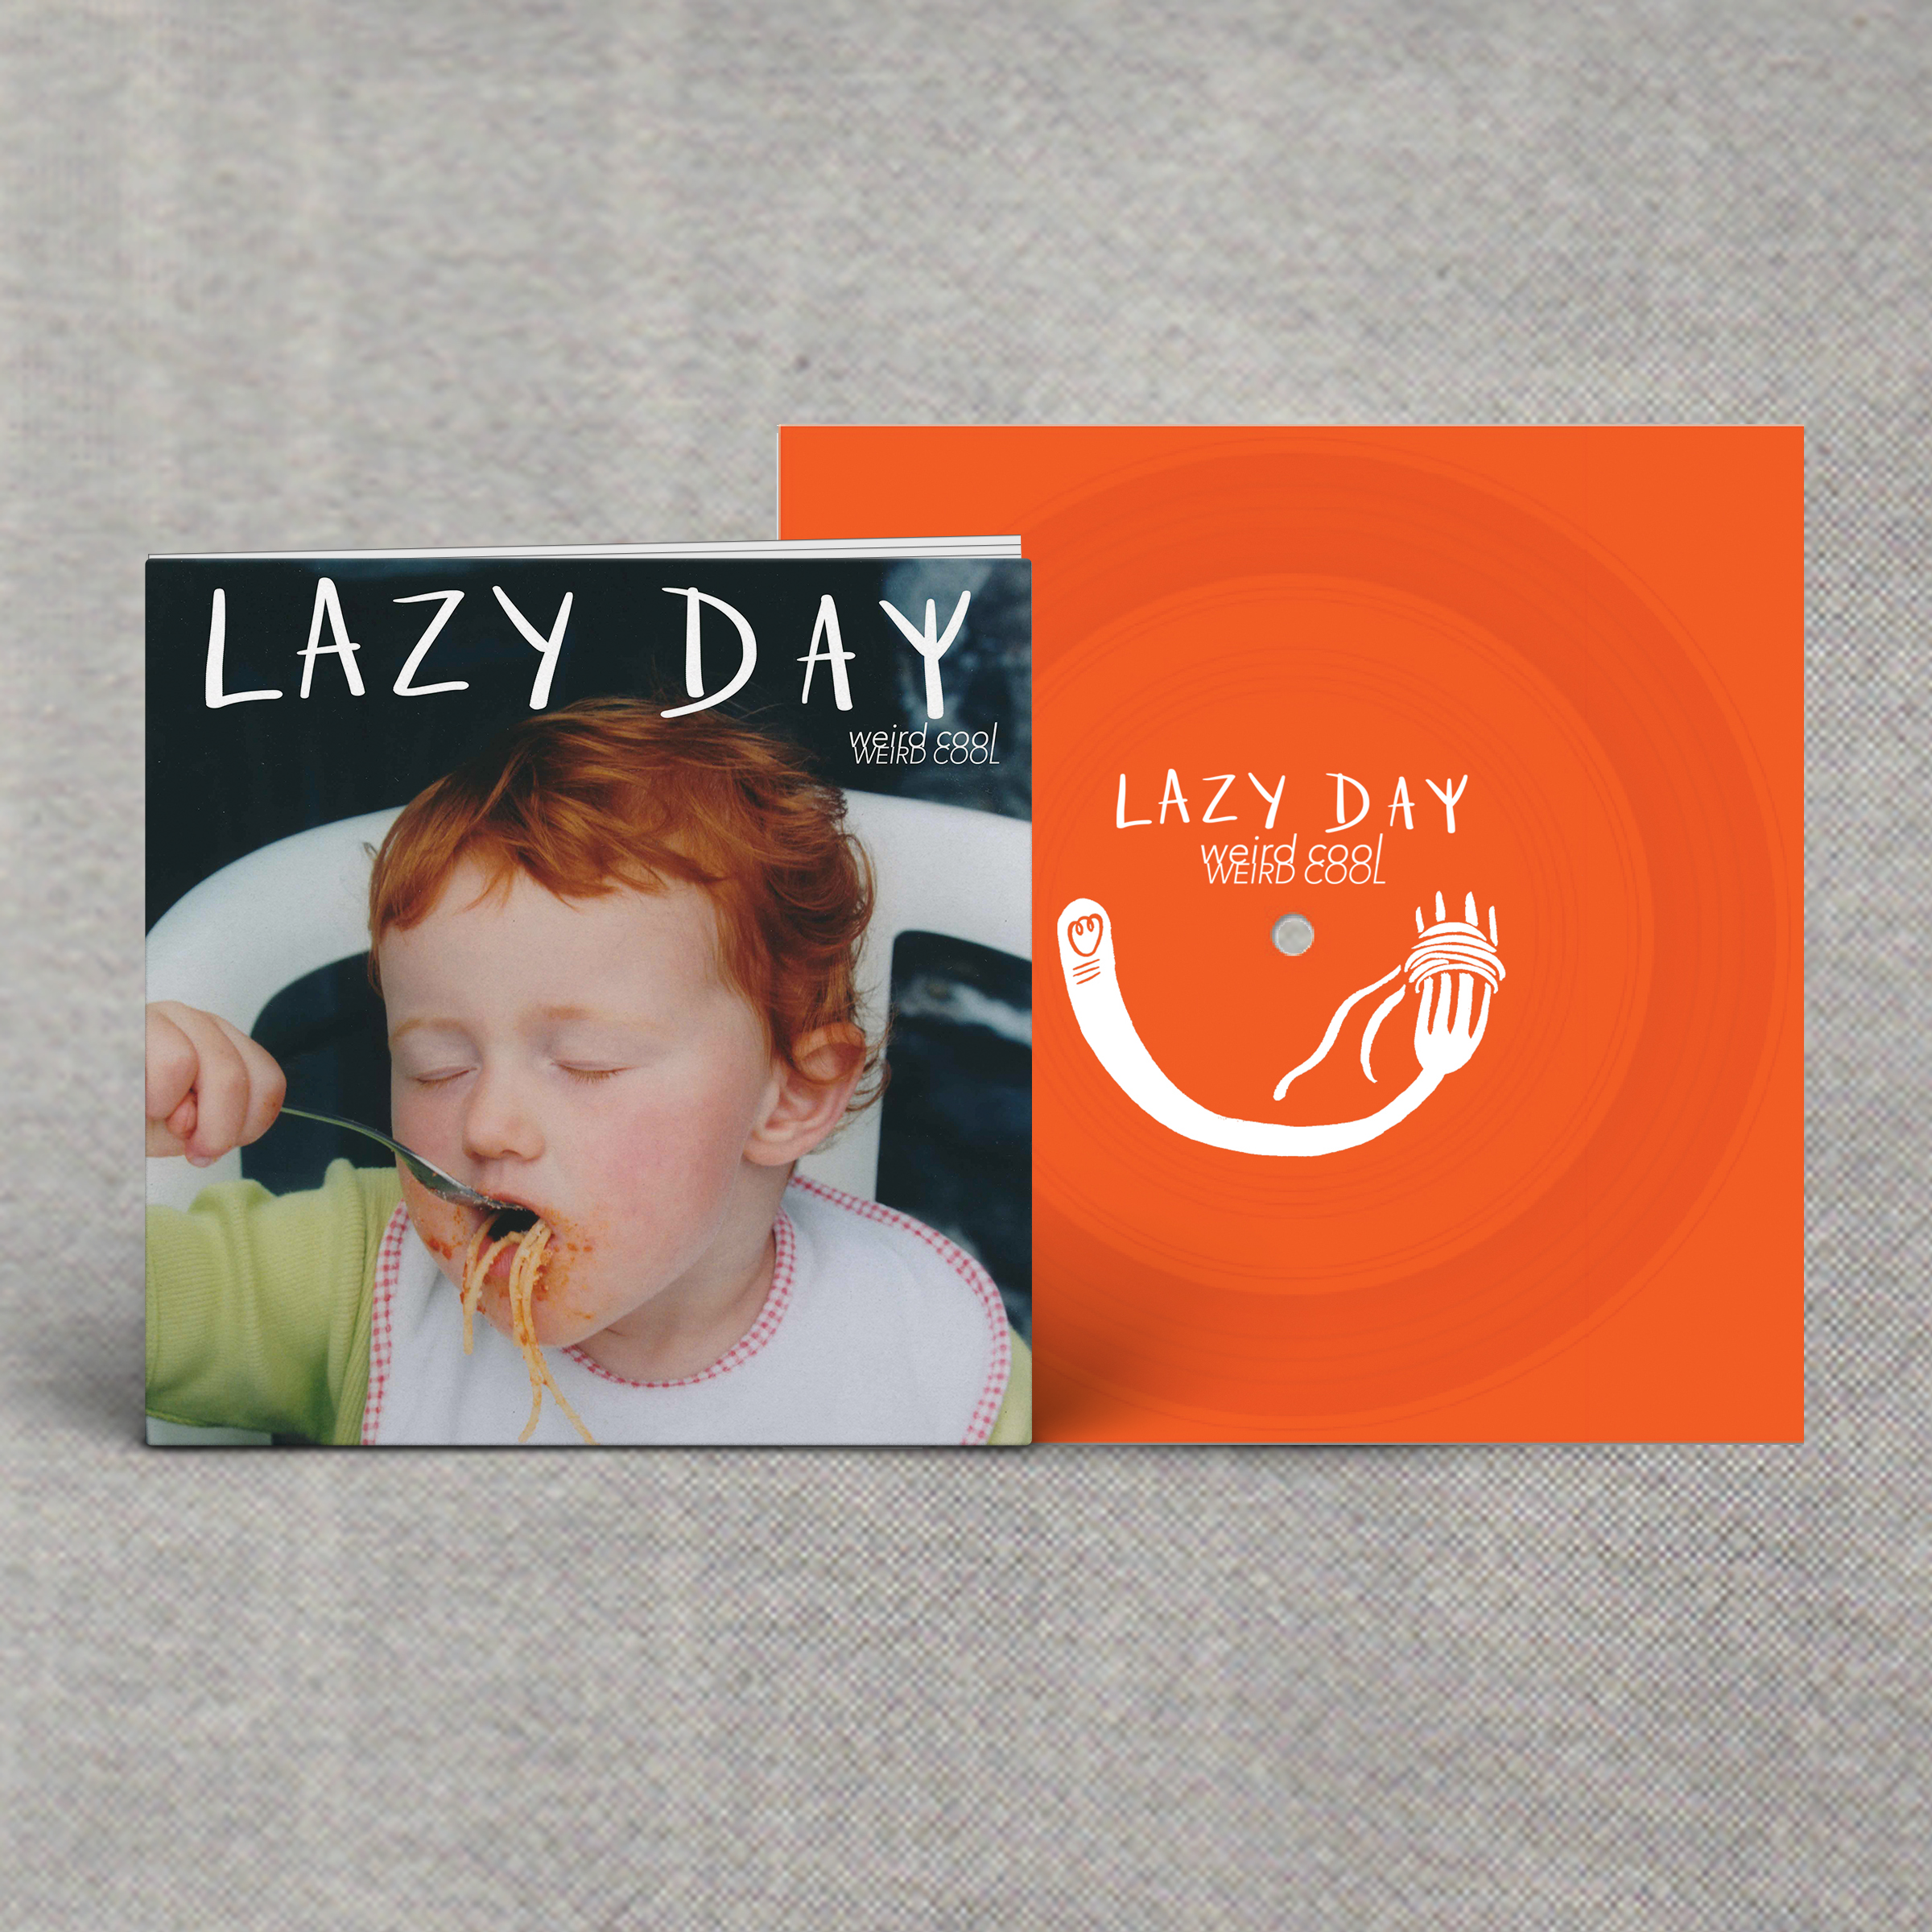 Lazy Day - Weird Cool (7